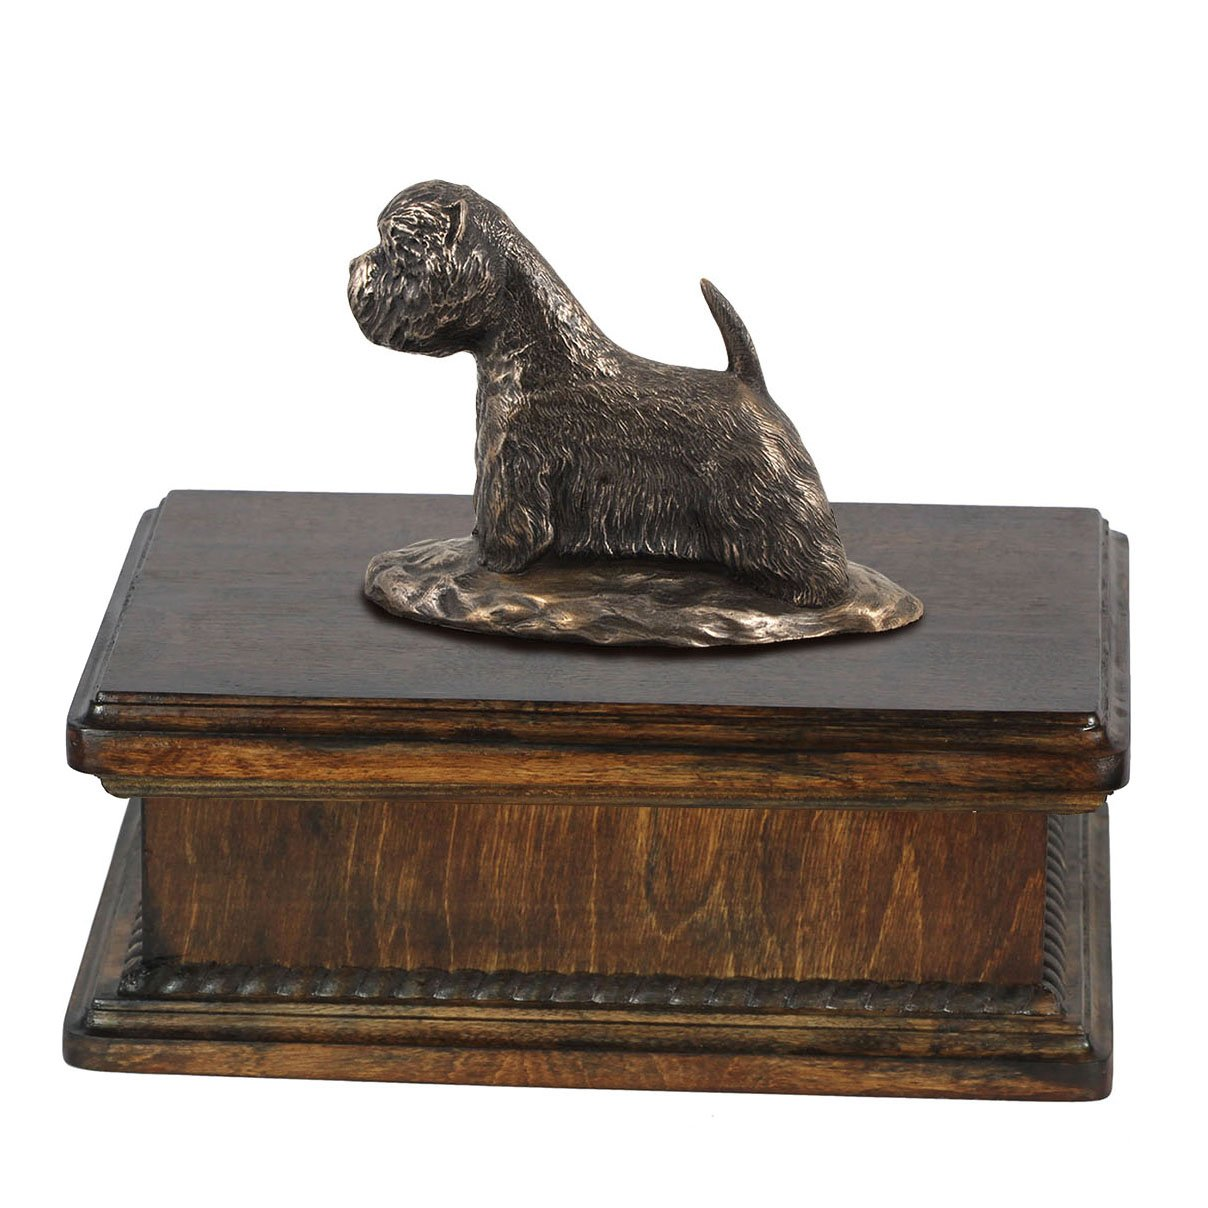 West Highland White Terrier, memorial, urn for dog's ashes, with dog statue, exclusive, ArtDog